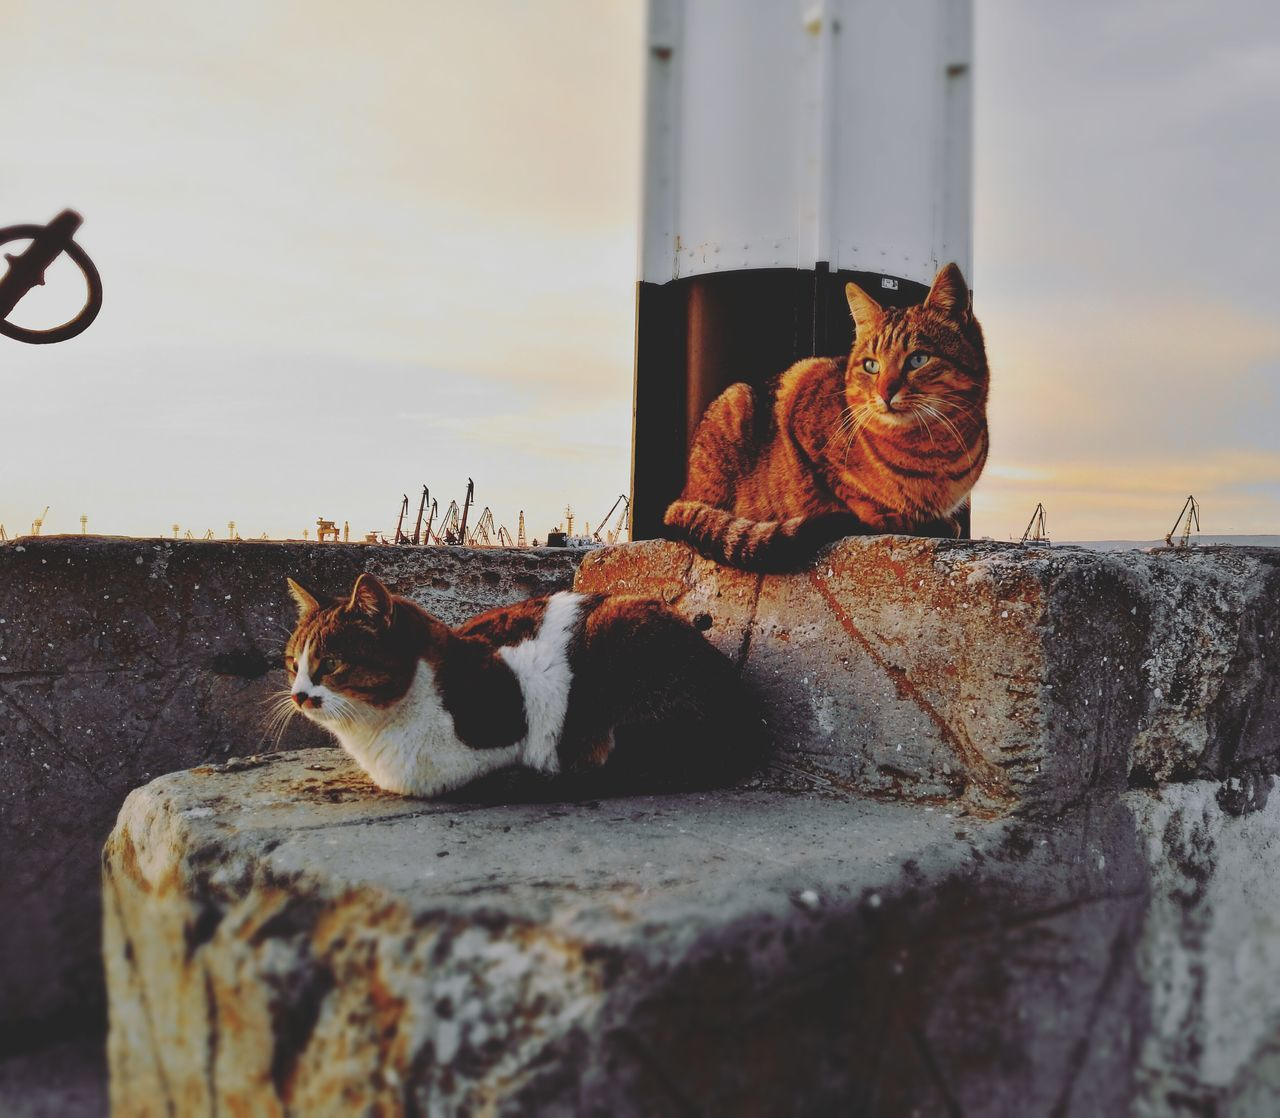 Animal Themes No People Sunset Animals In The Wild Mammal Day Nature Sky Water Outdoors Varna Bulgaria Varna Bułgaria Cats Sea. Sea port Varna